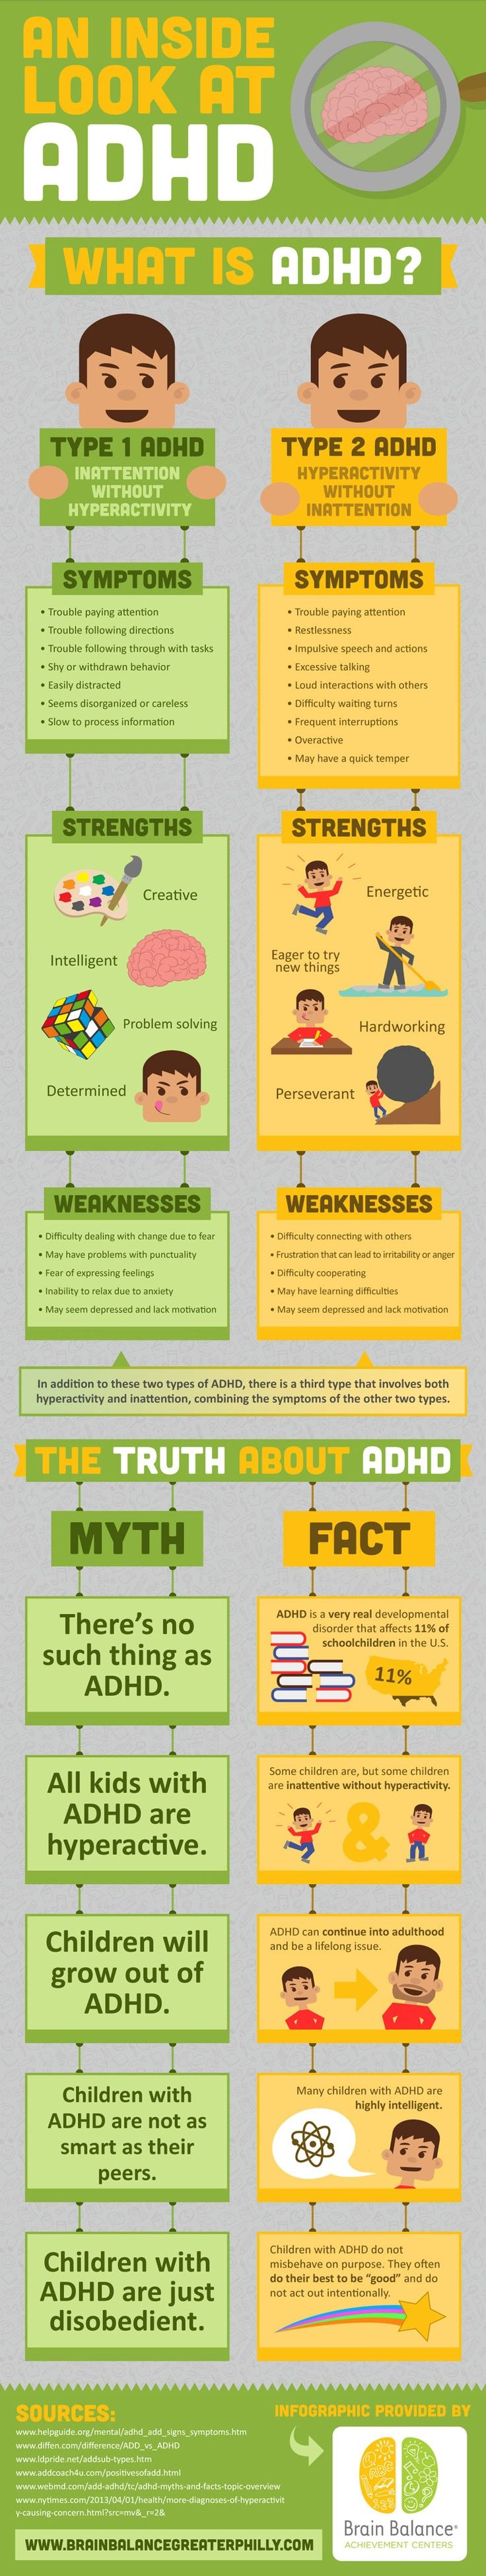 Not Broken, Just Different: Explaining ADHD to a Young Child Not Broken, Just Different: Explaining ADHD to a Young Child new images